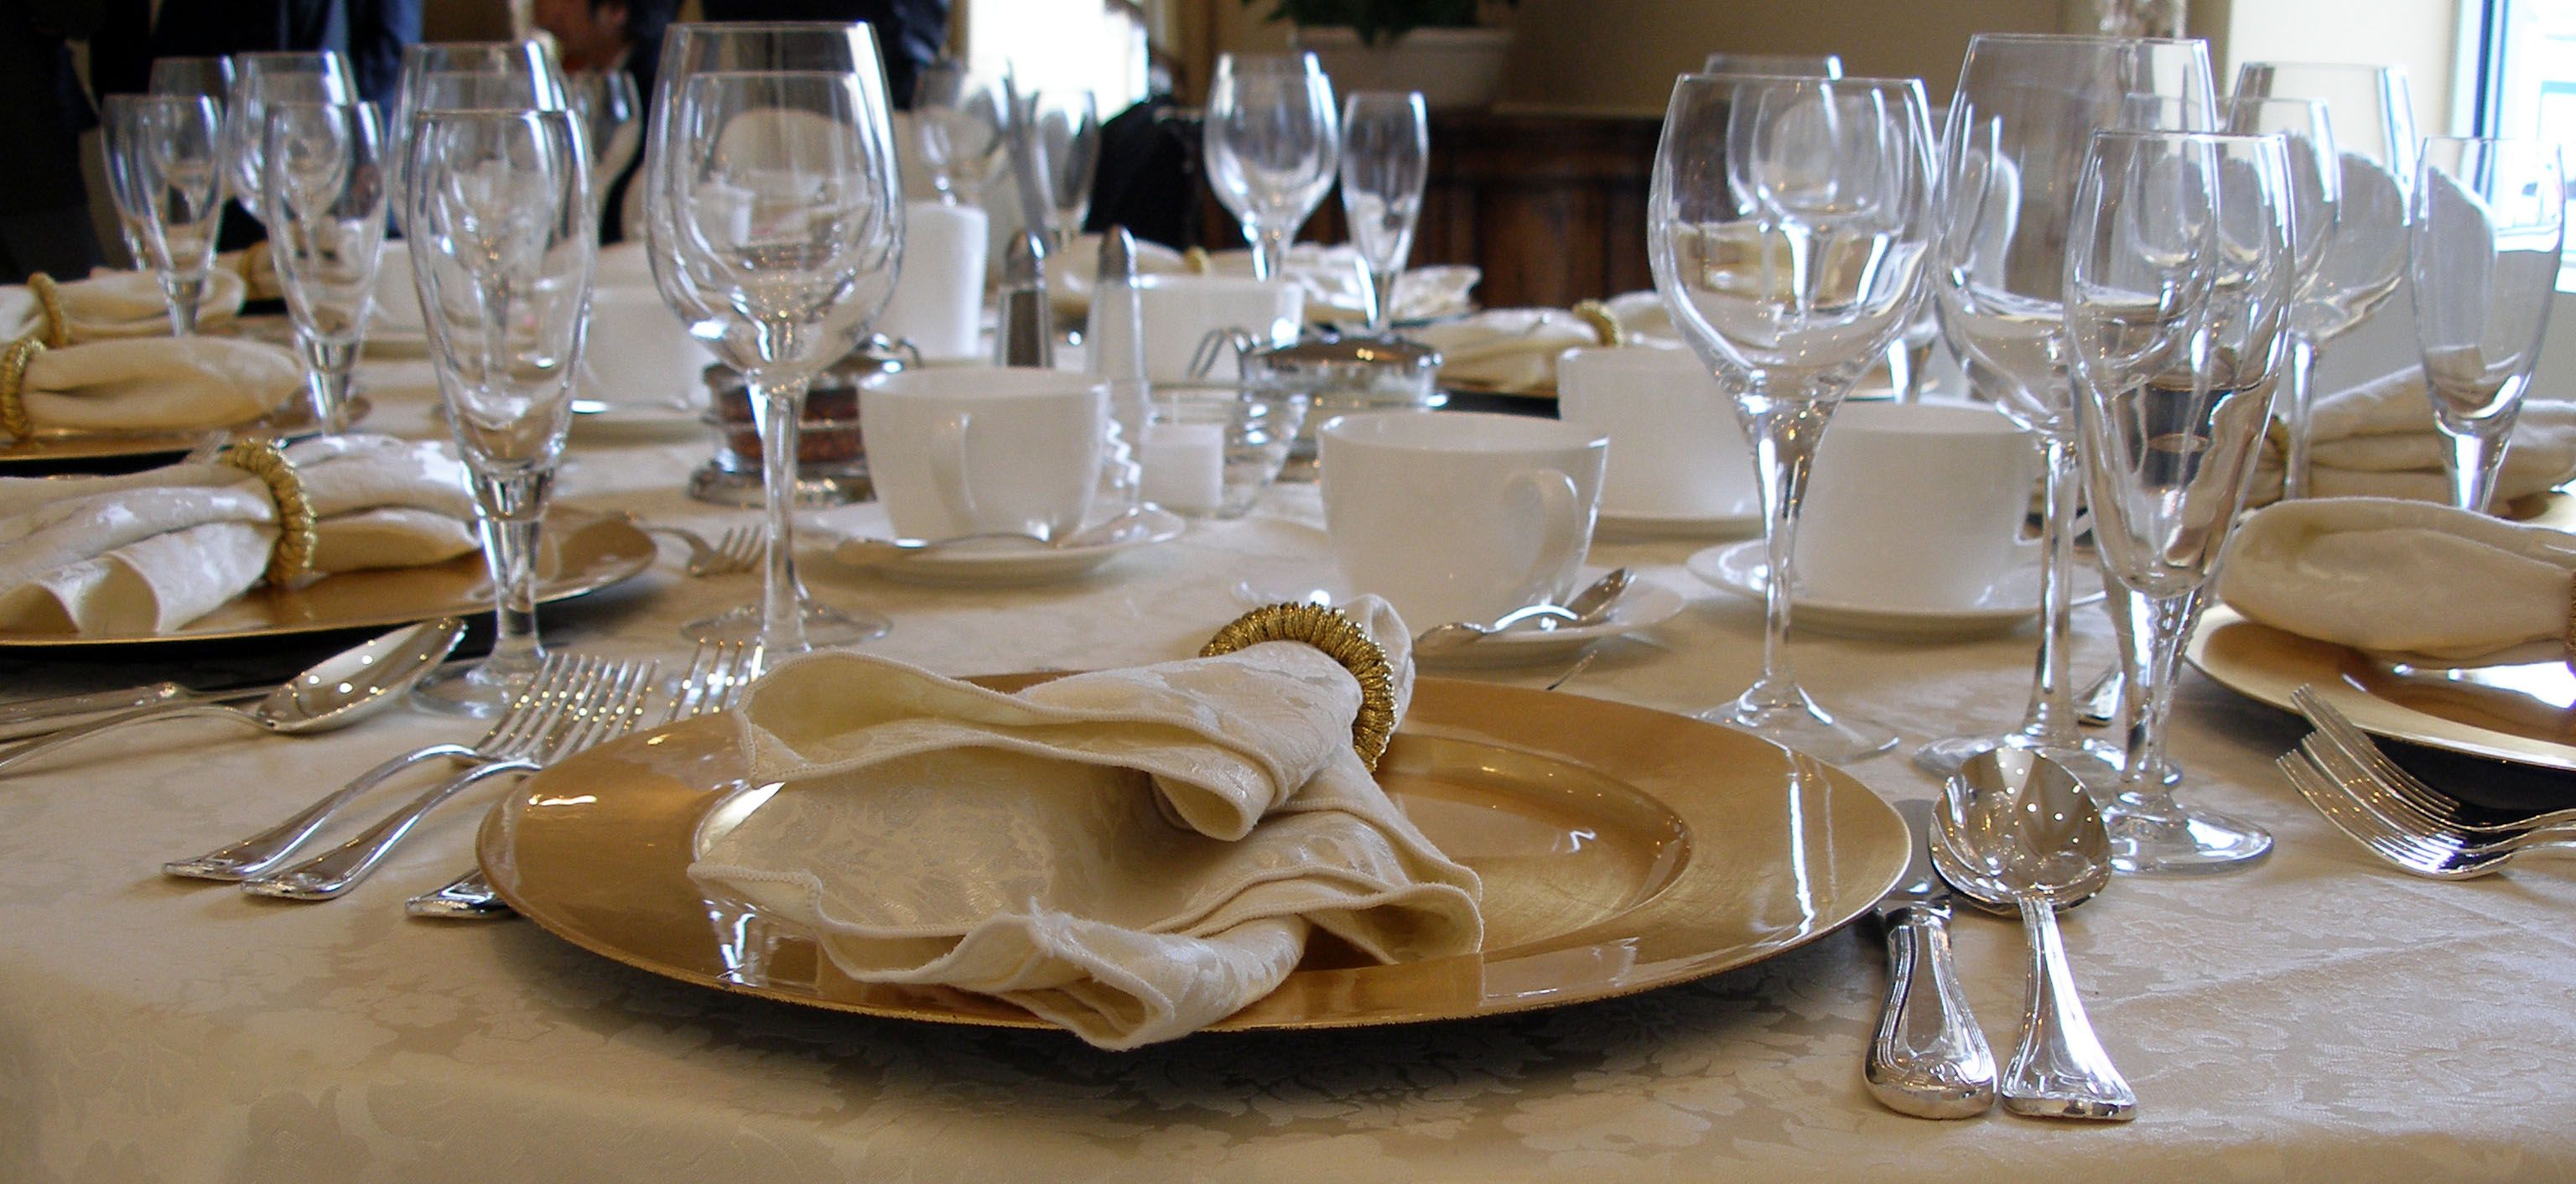 Table setting for fine dining google search table for Fancy dinner table